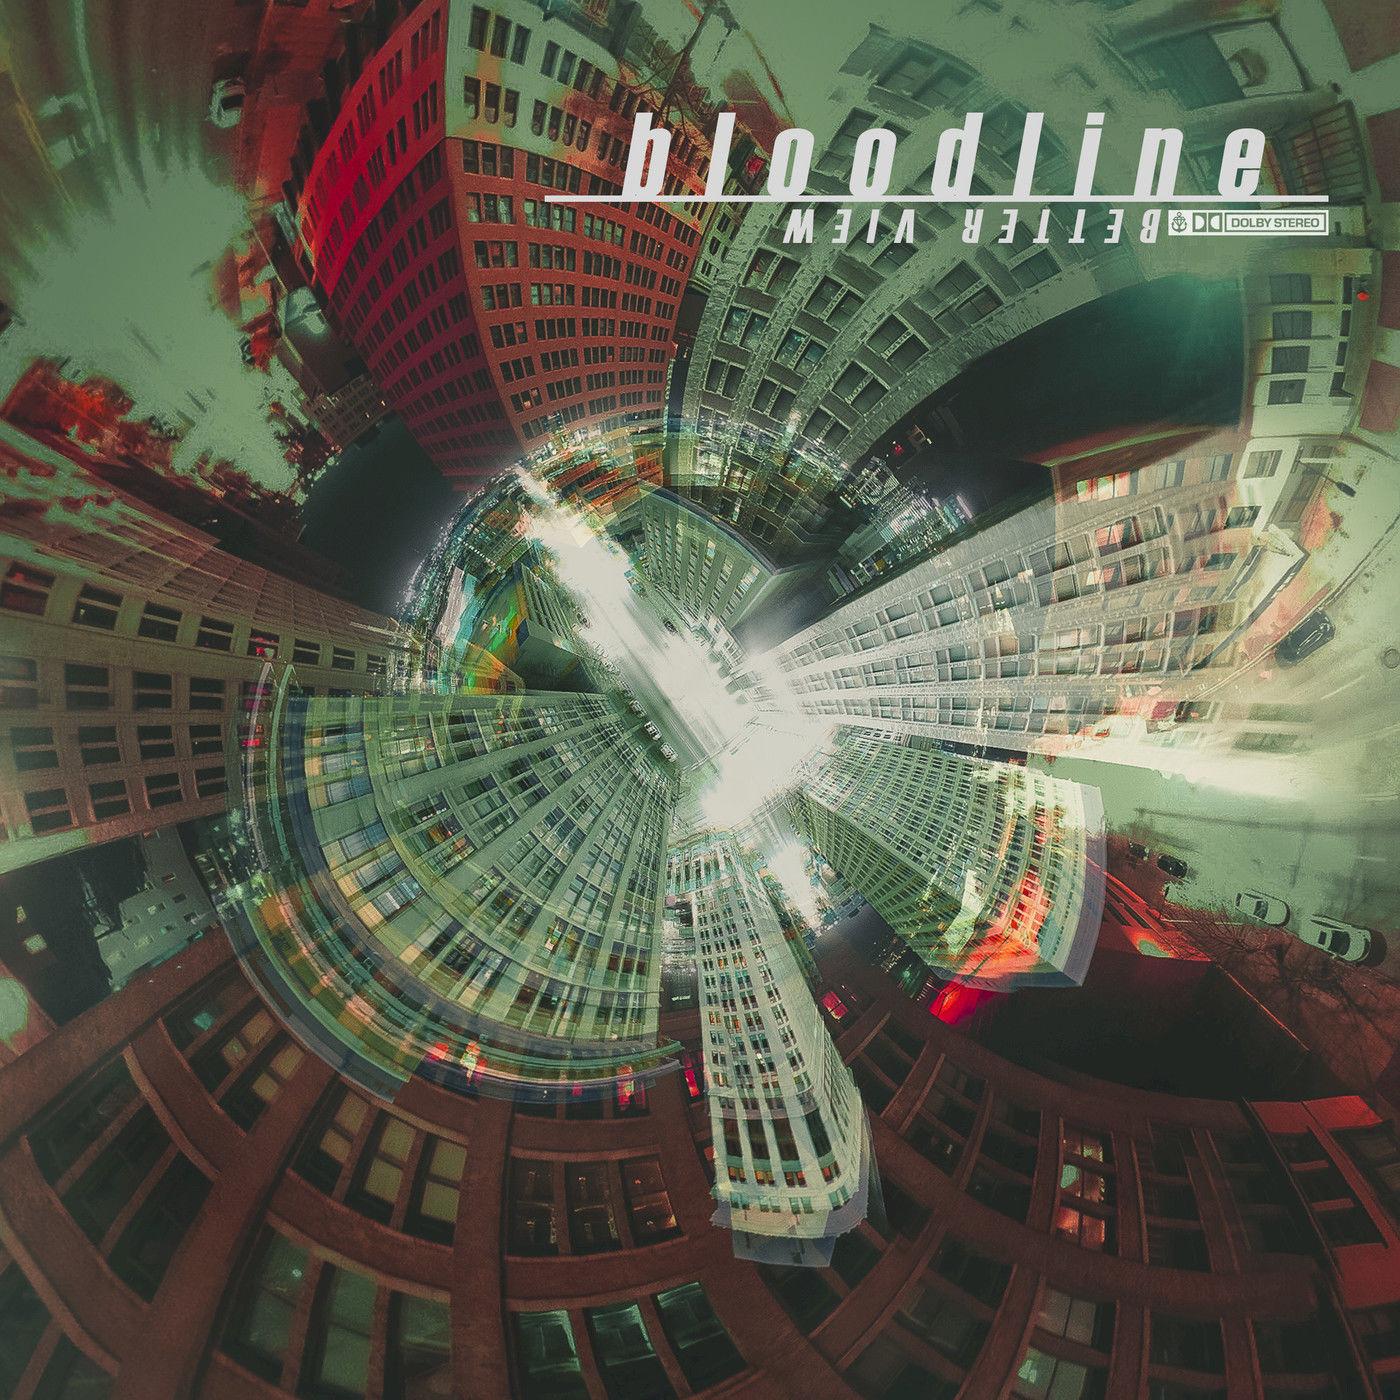 Bloodline - Better View (2019)